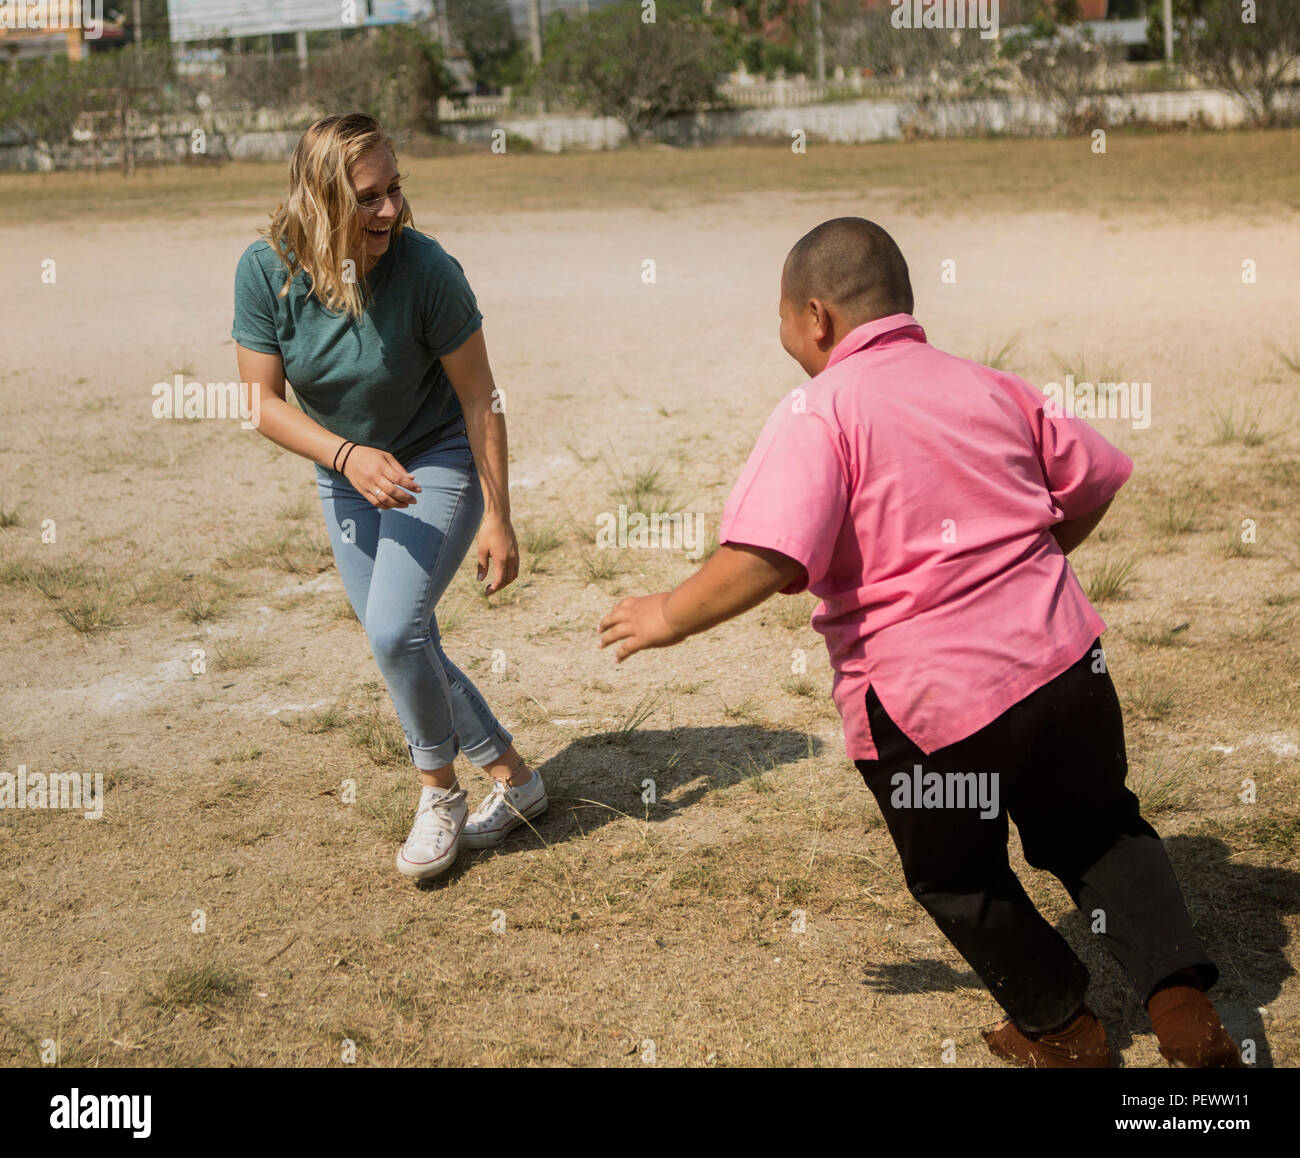 Lance Cpl  Macey D  Allcott plays tag with Aun Kubkhan at